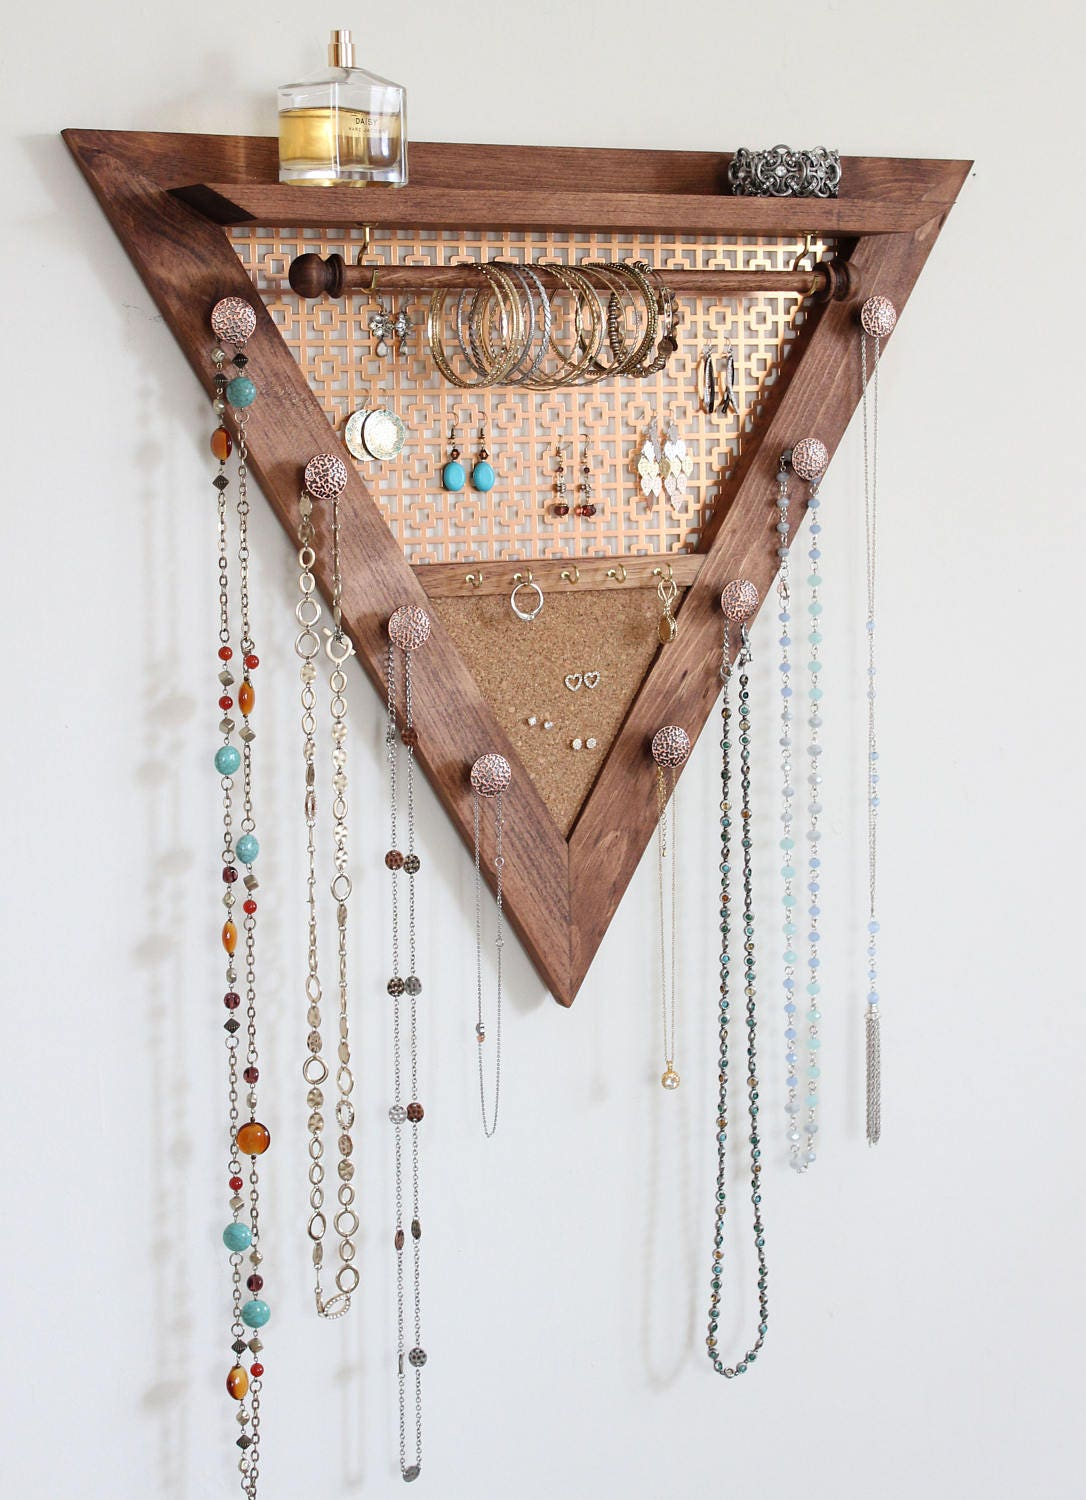 Triangle Jewelry Organizer Wooden Wall Hanging Jewelry Organizer